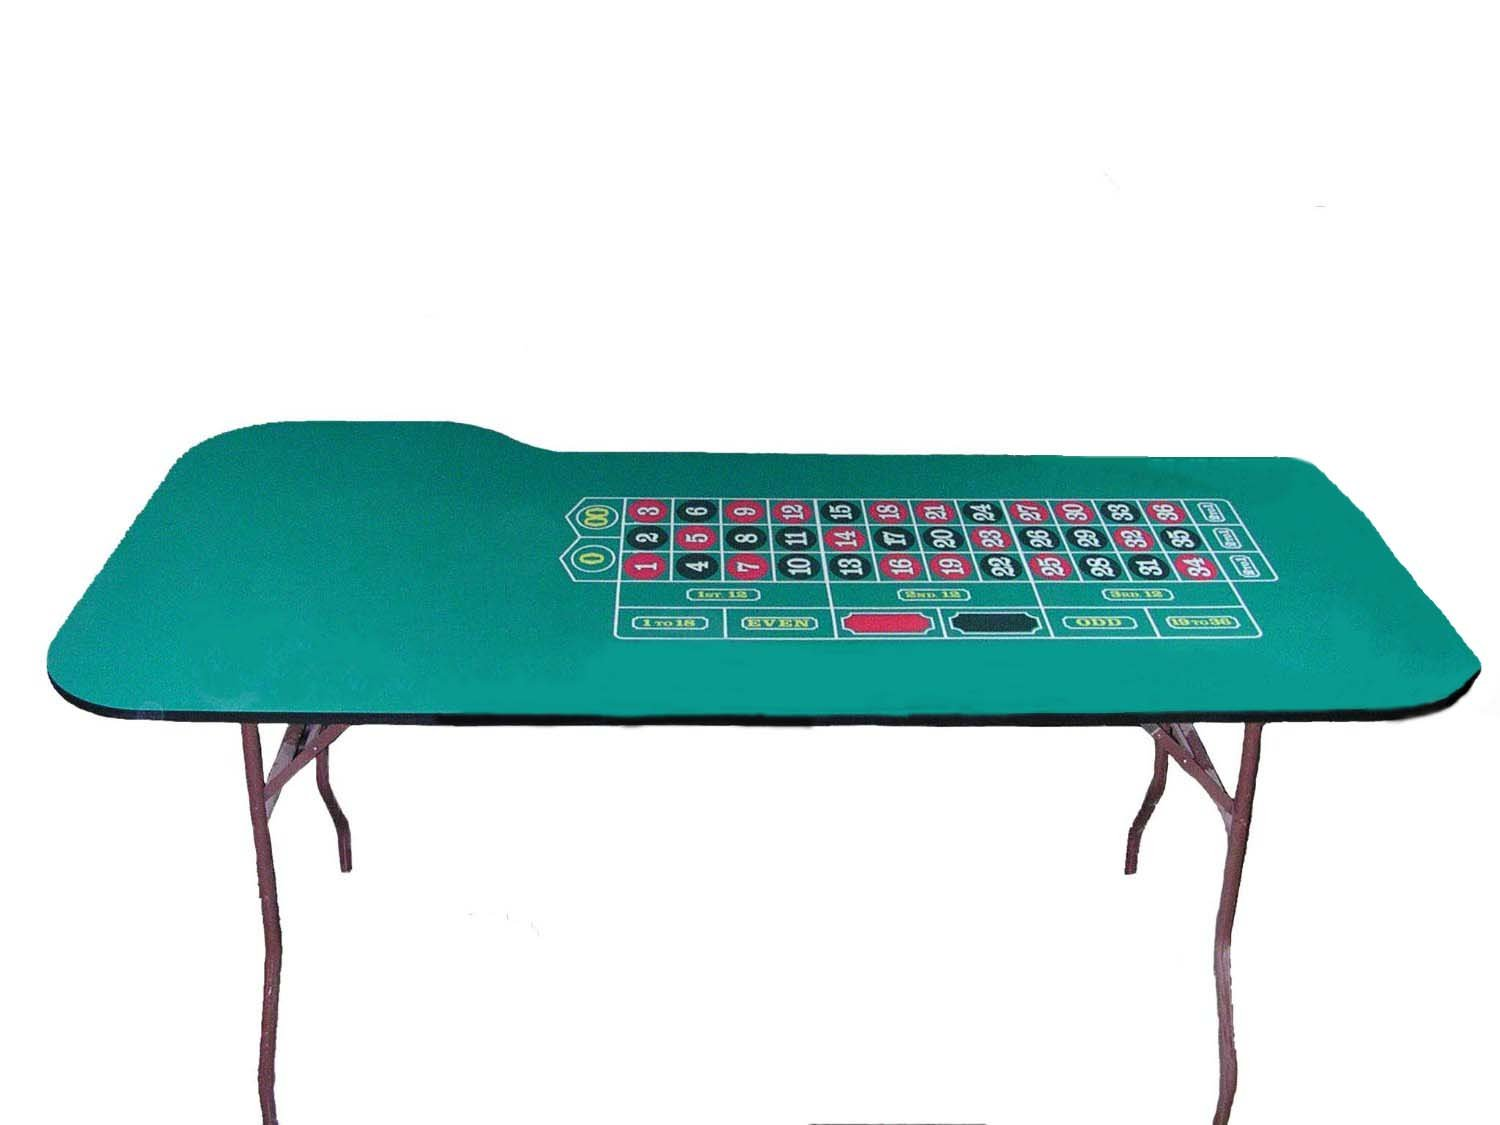 84 Inch Professional Roulette Table - Made in the USA